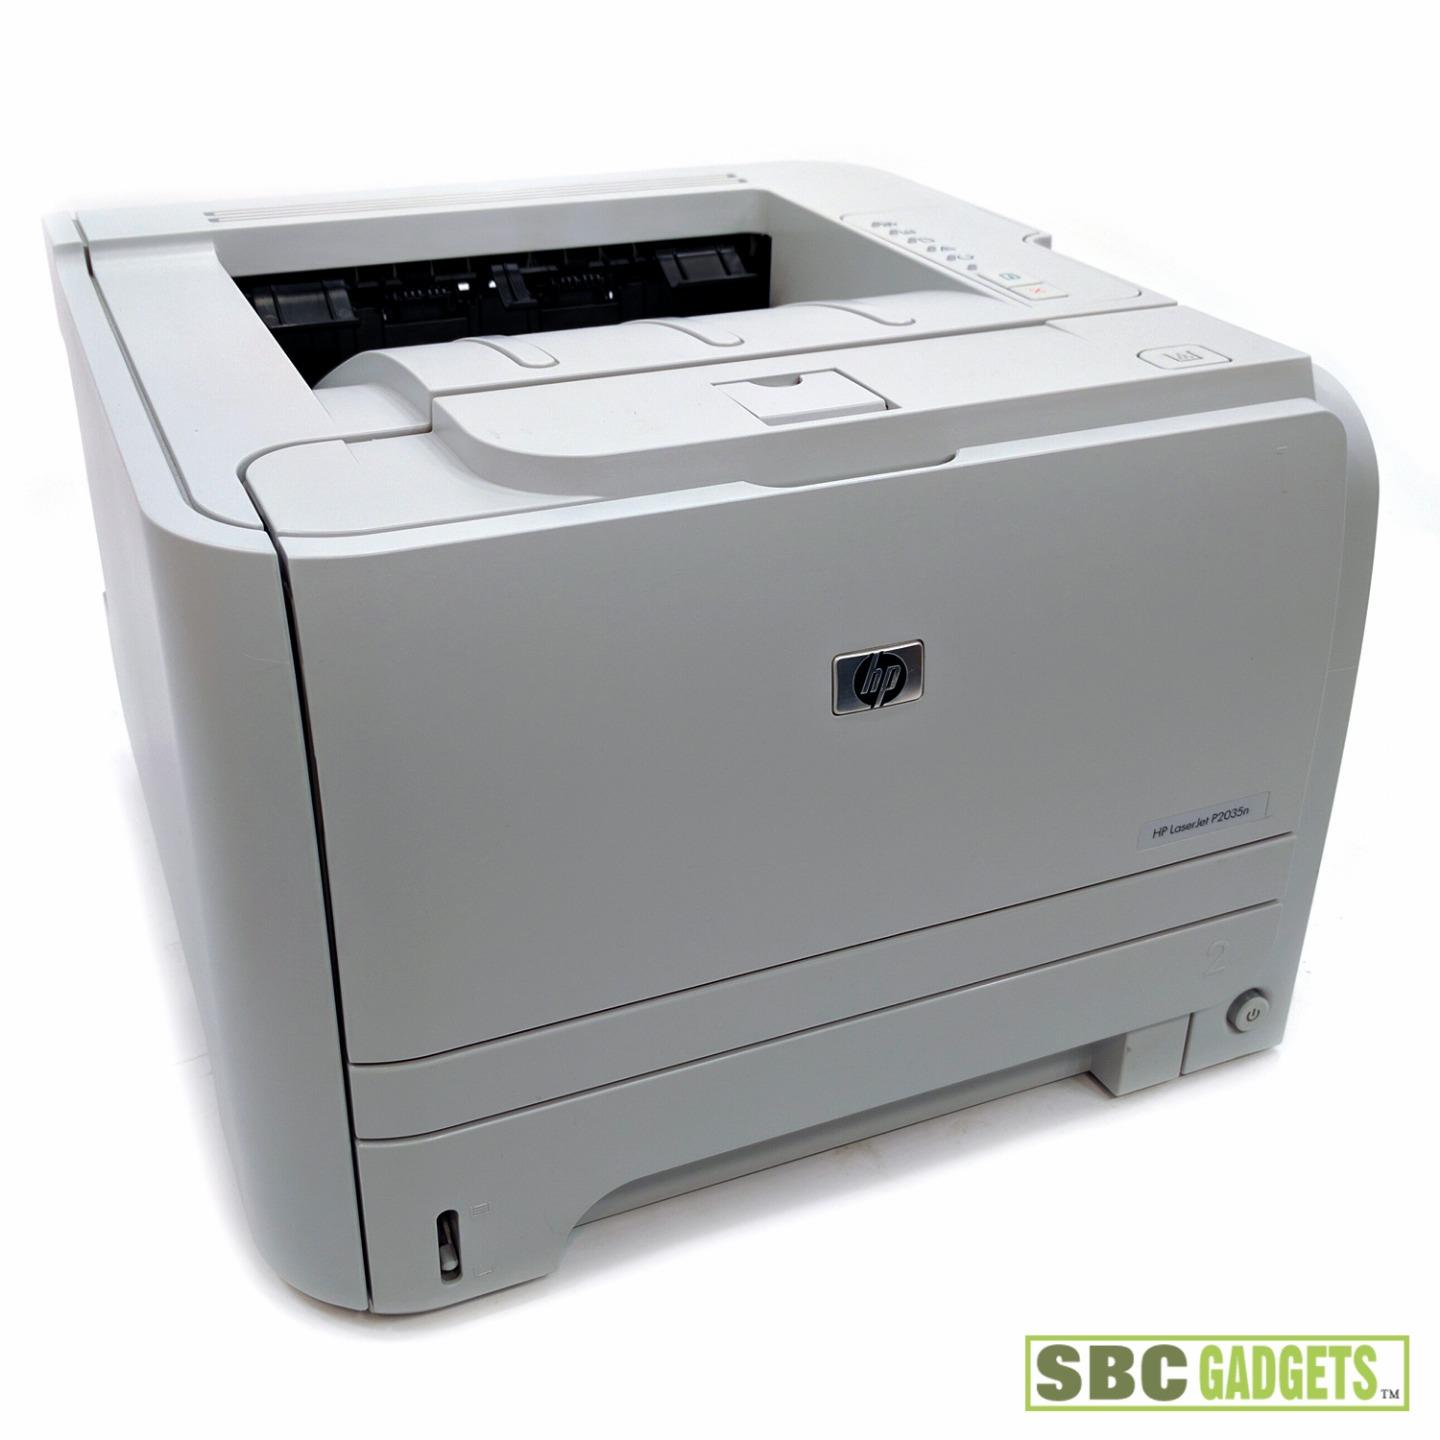 Find support and troubleshooting info including software, drivers, and manuals for your HP Deskjet e-All-in-One Printer.